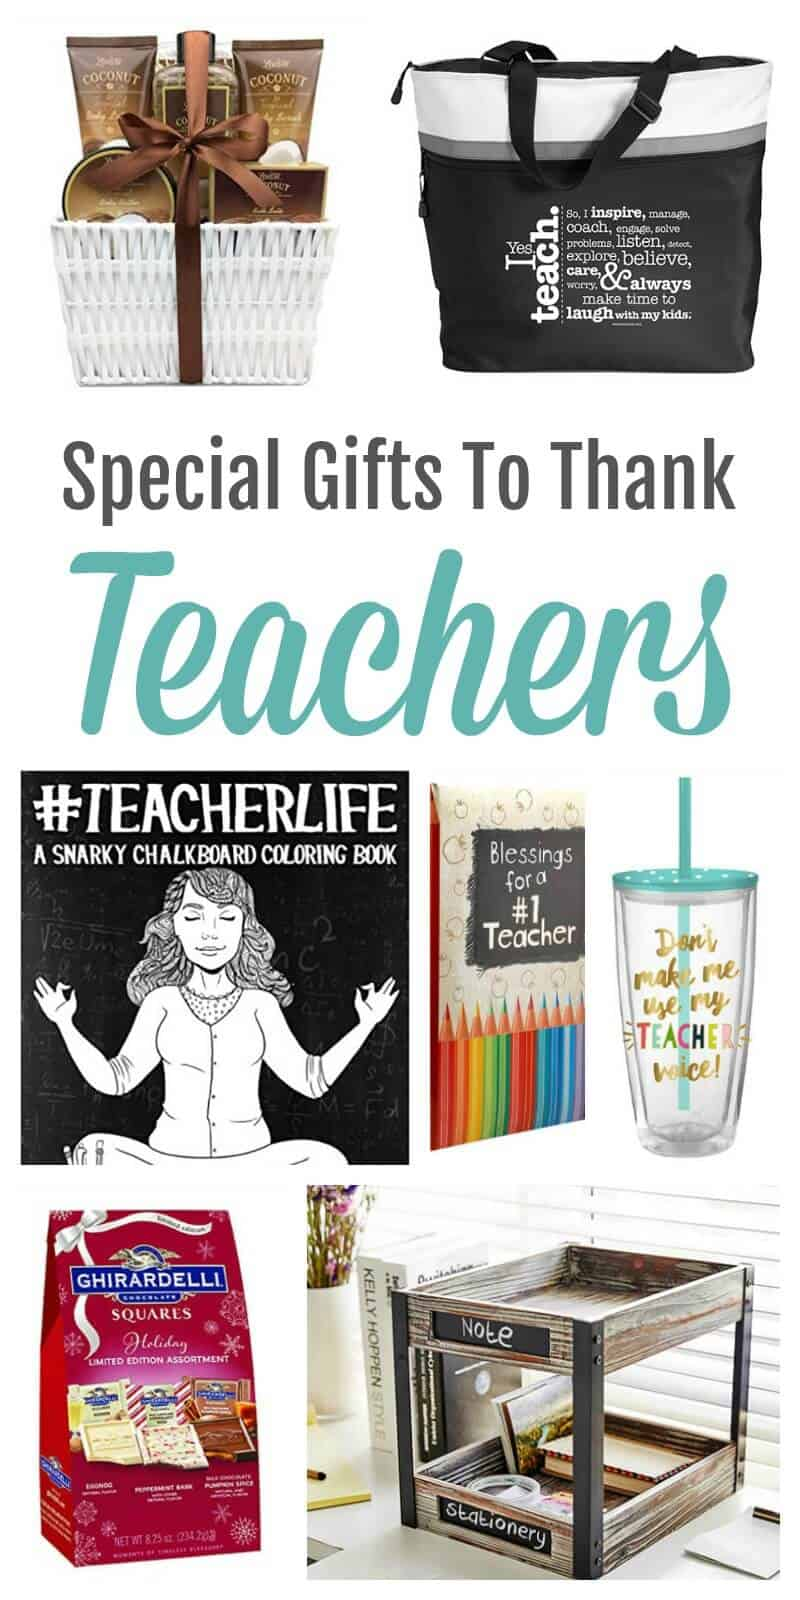 Special Gifts to Thank Teachers